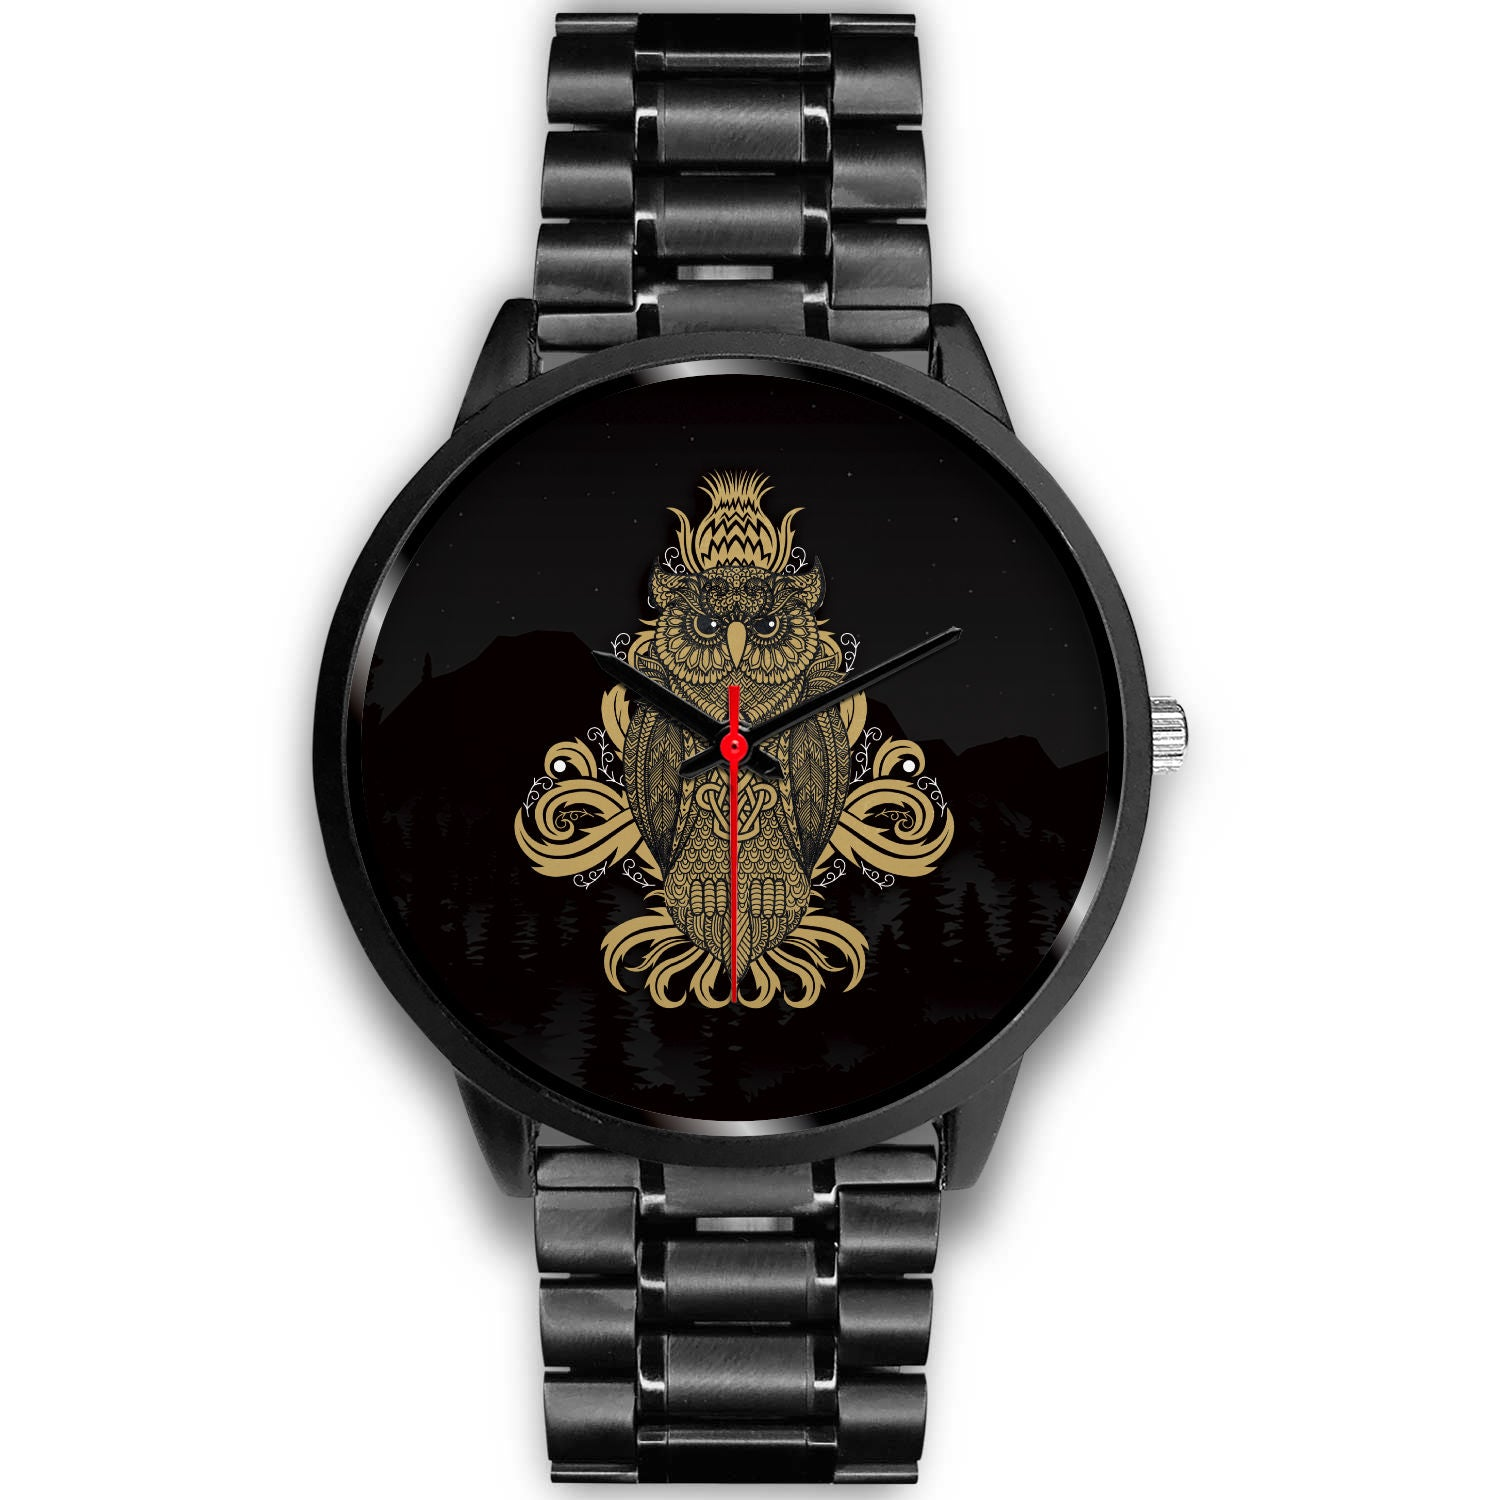 Customized Black Watch